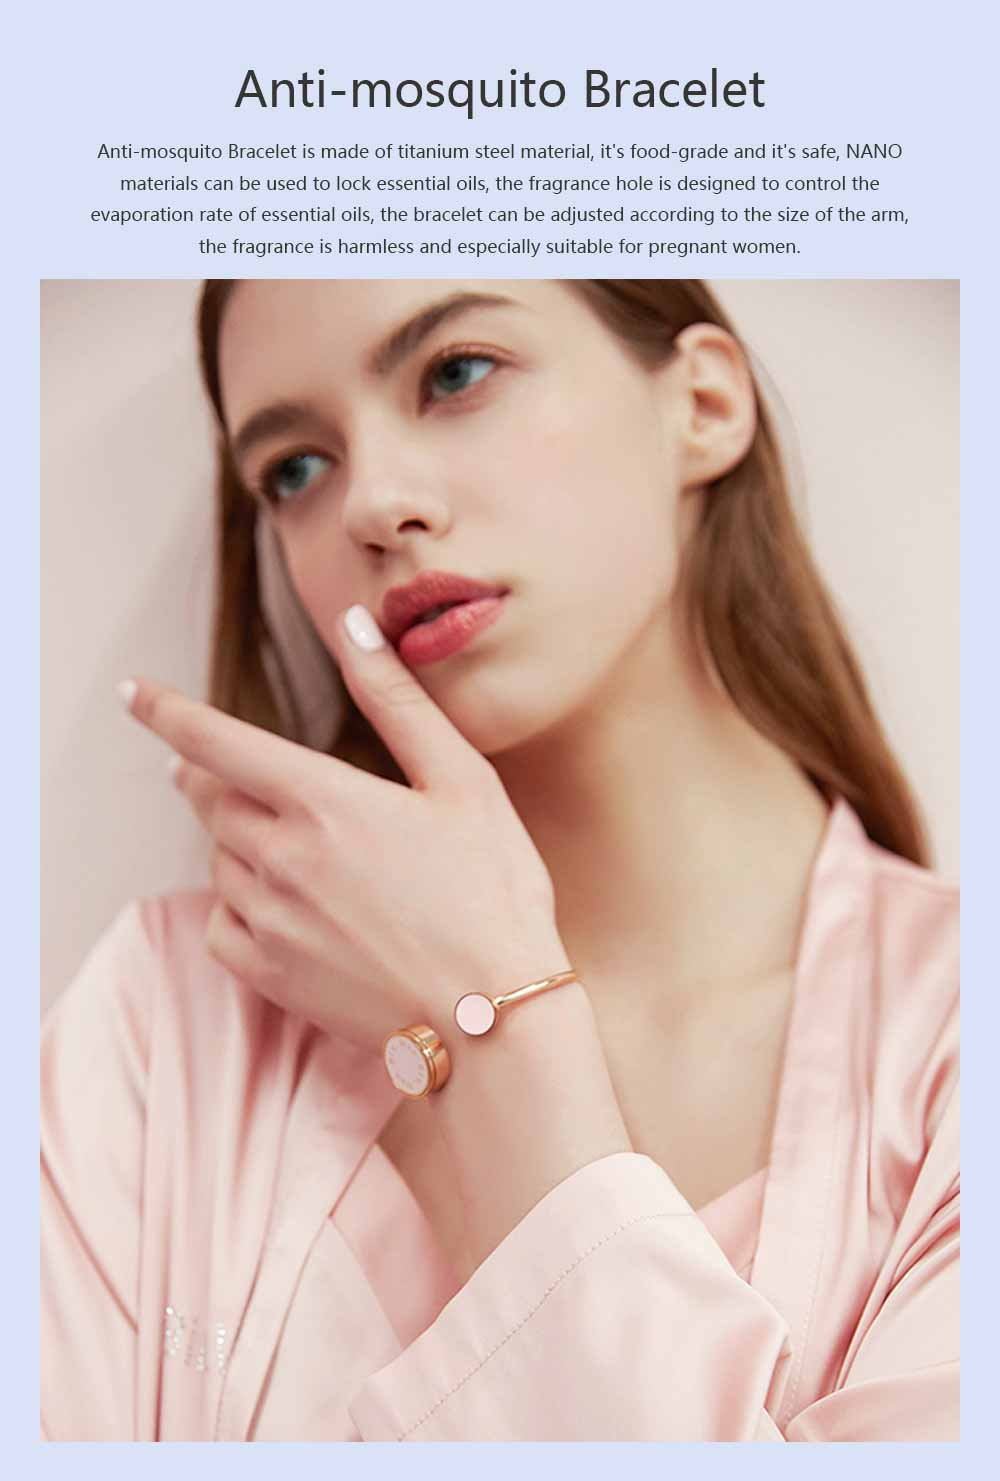 Mosquito Repellent Band, Titanium Steel Material Harmless with Perfume Incense Core, Safe for Pregnant Women Anti-mosquito Bracelet 0